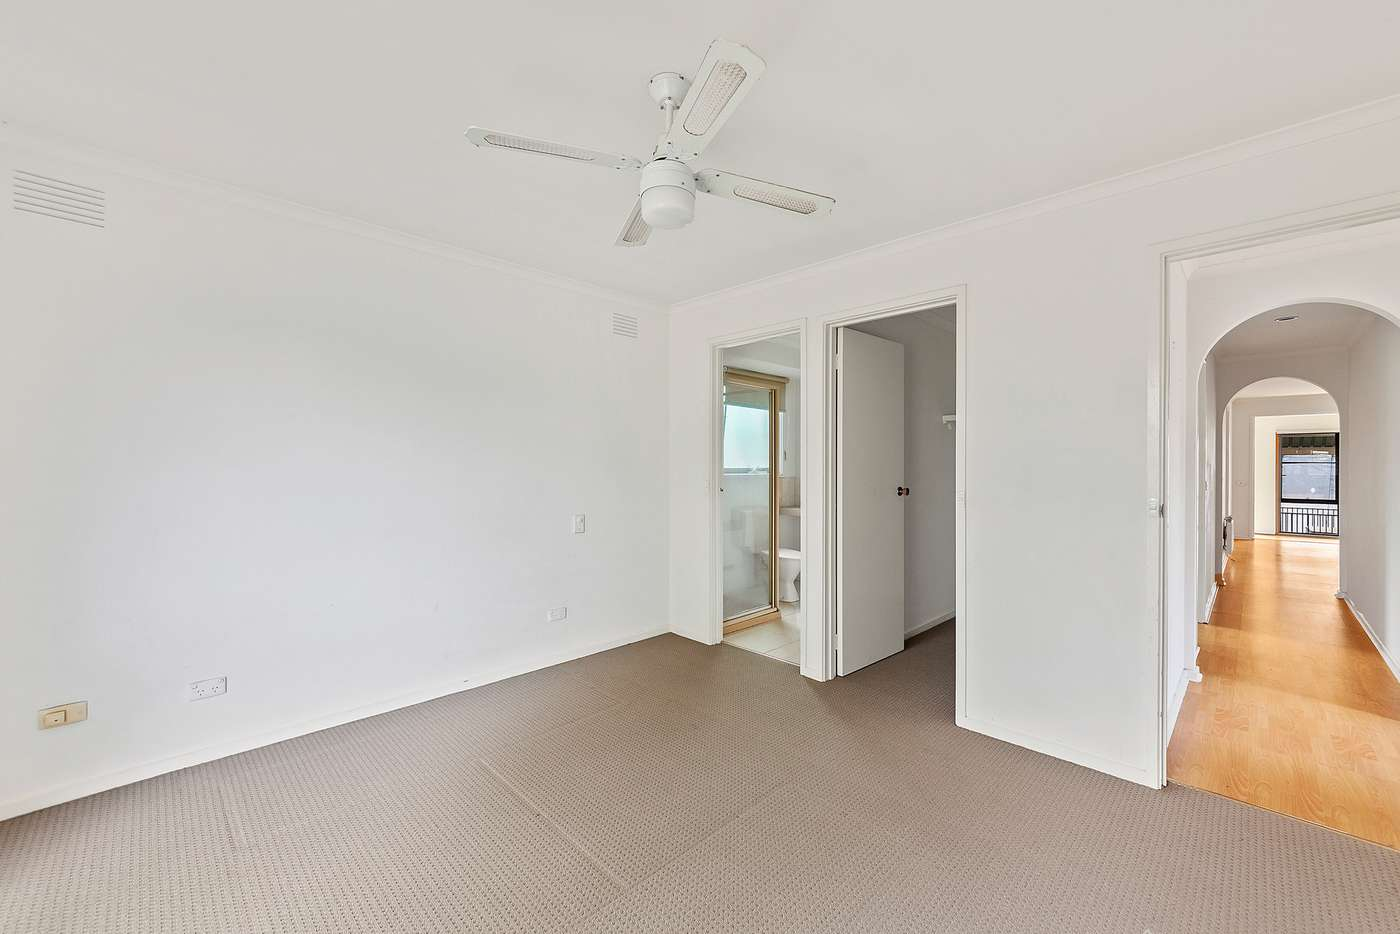 Sixth view of Homely house listing, 11 Ravensthorpe Crescent, Narre Warren VIC 3805